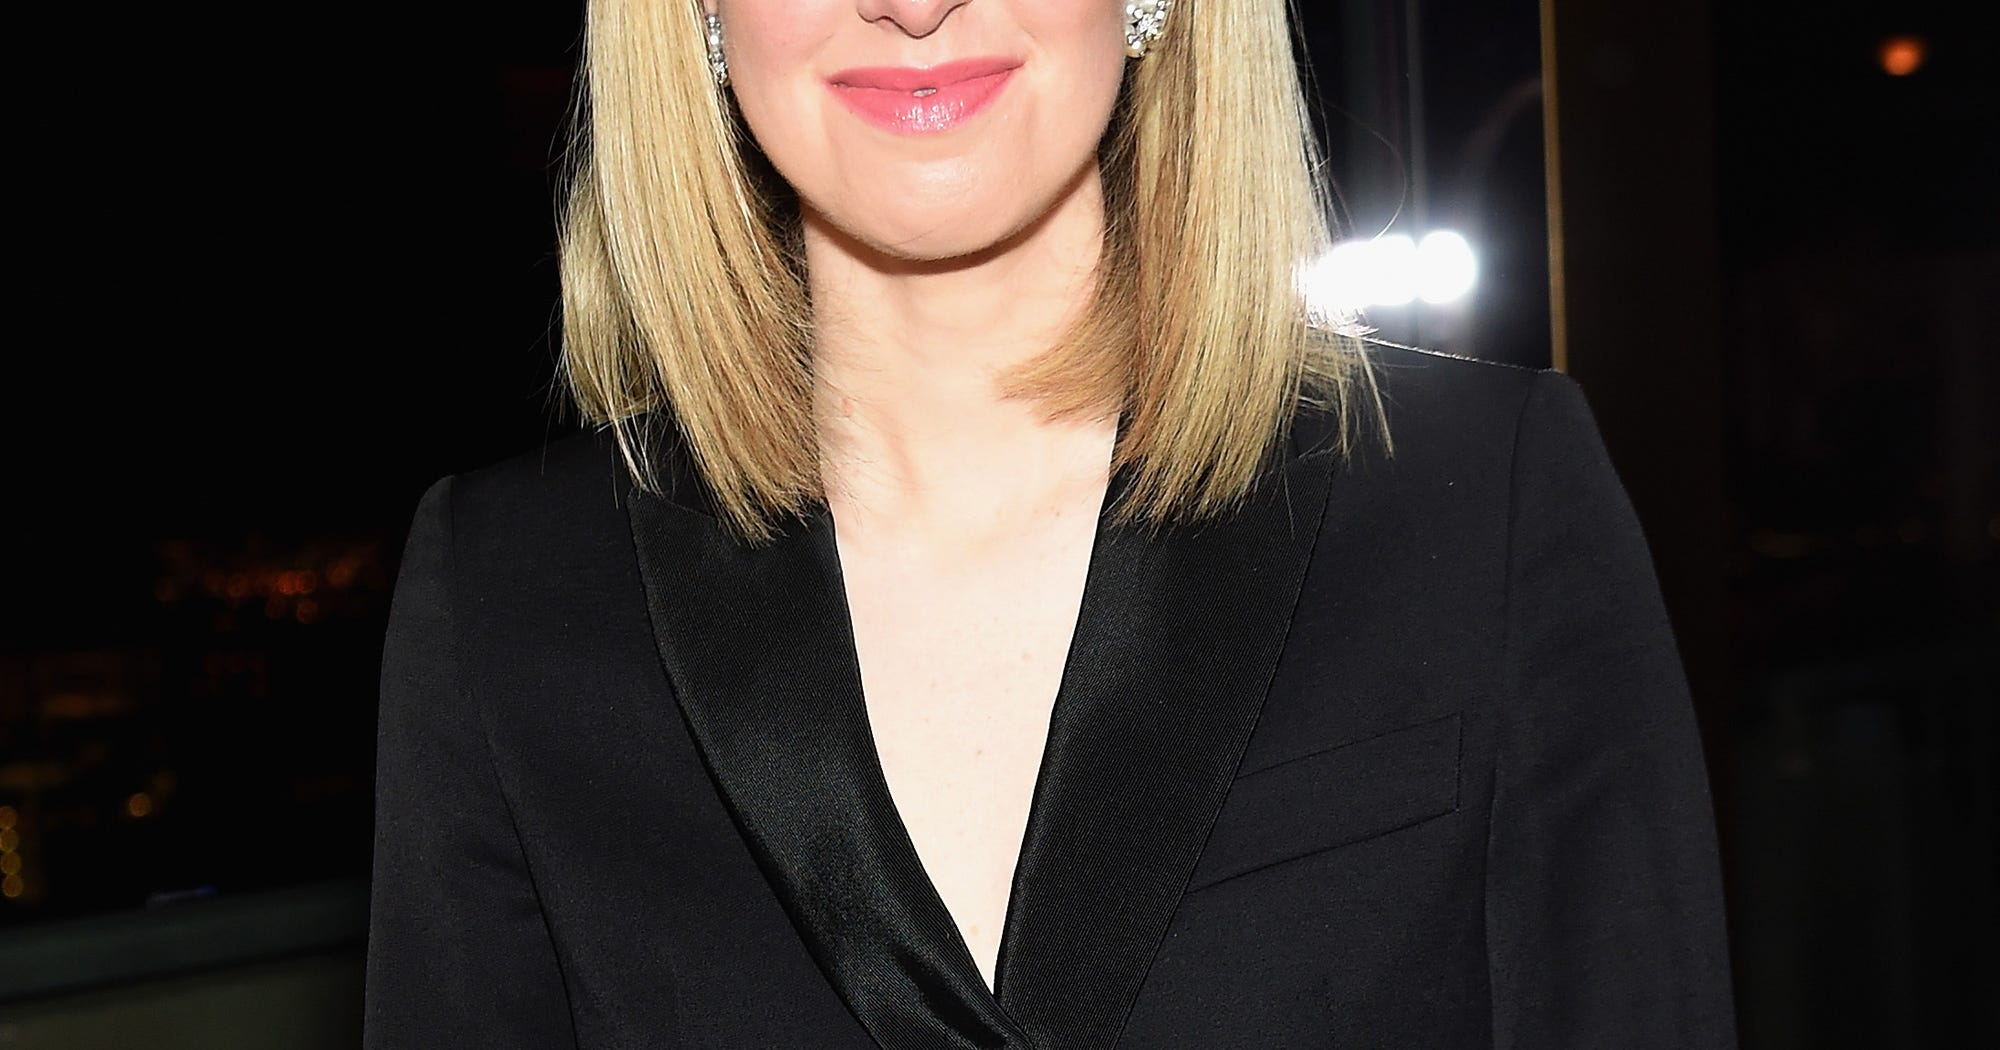 Elizabeth Holmes Family Net Worth: Was She Born Rich?